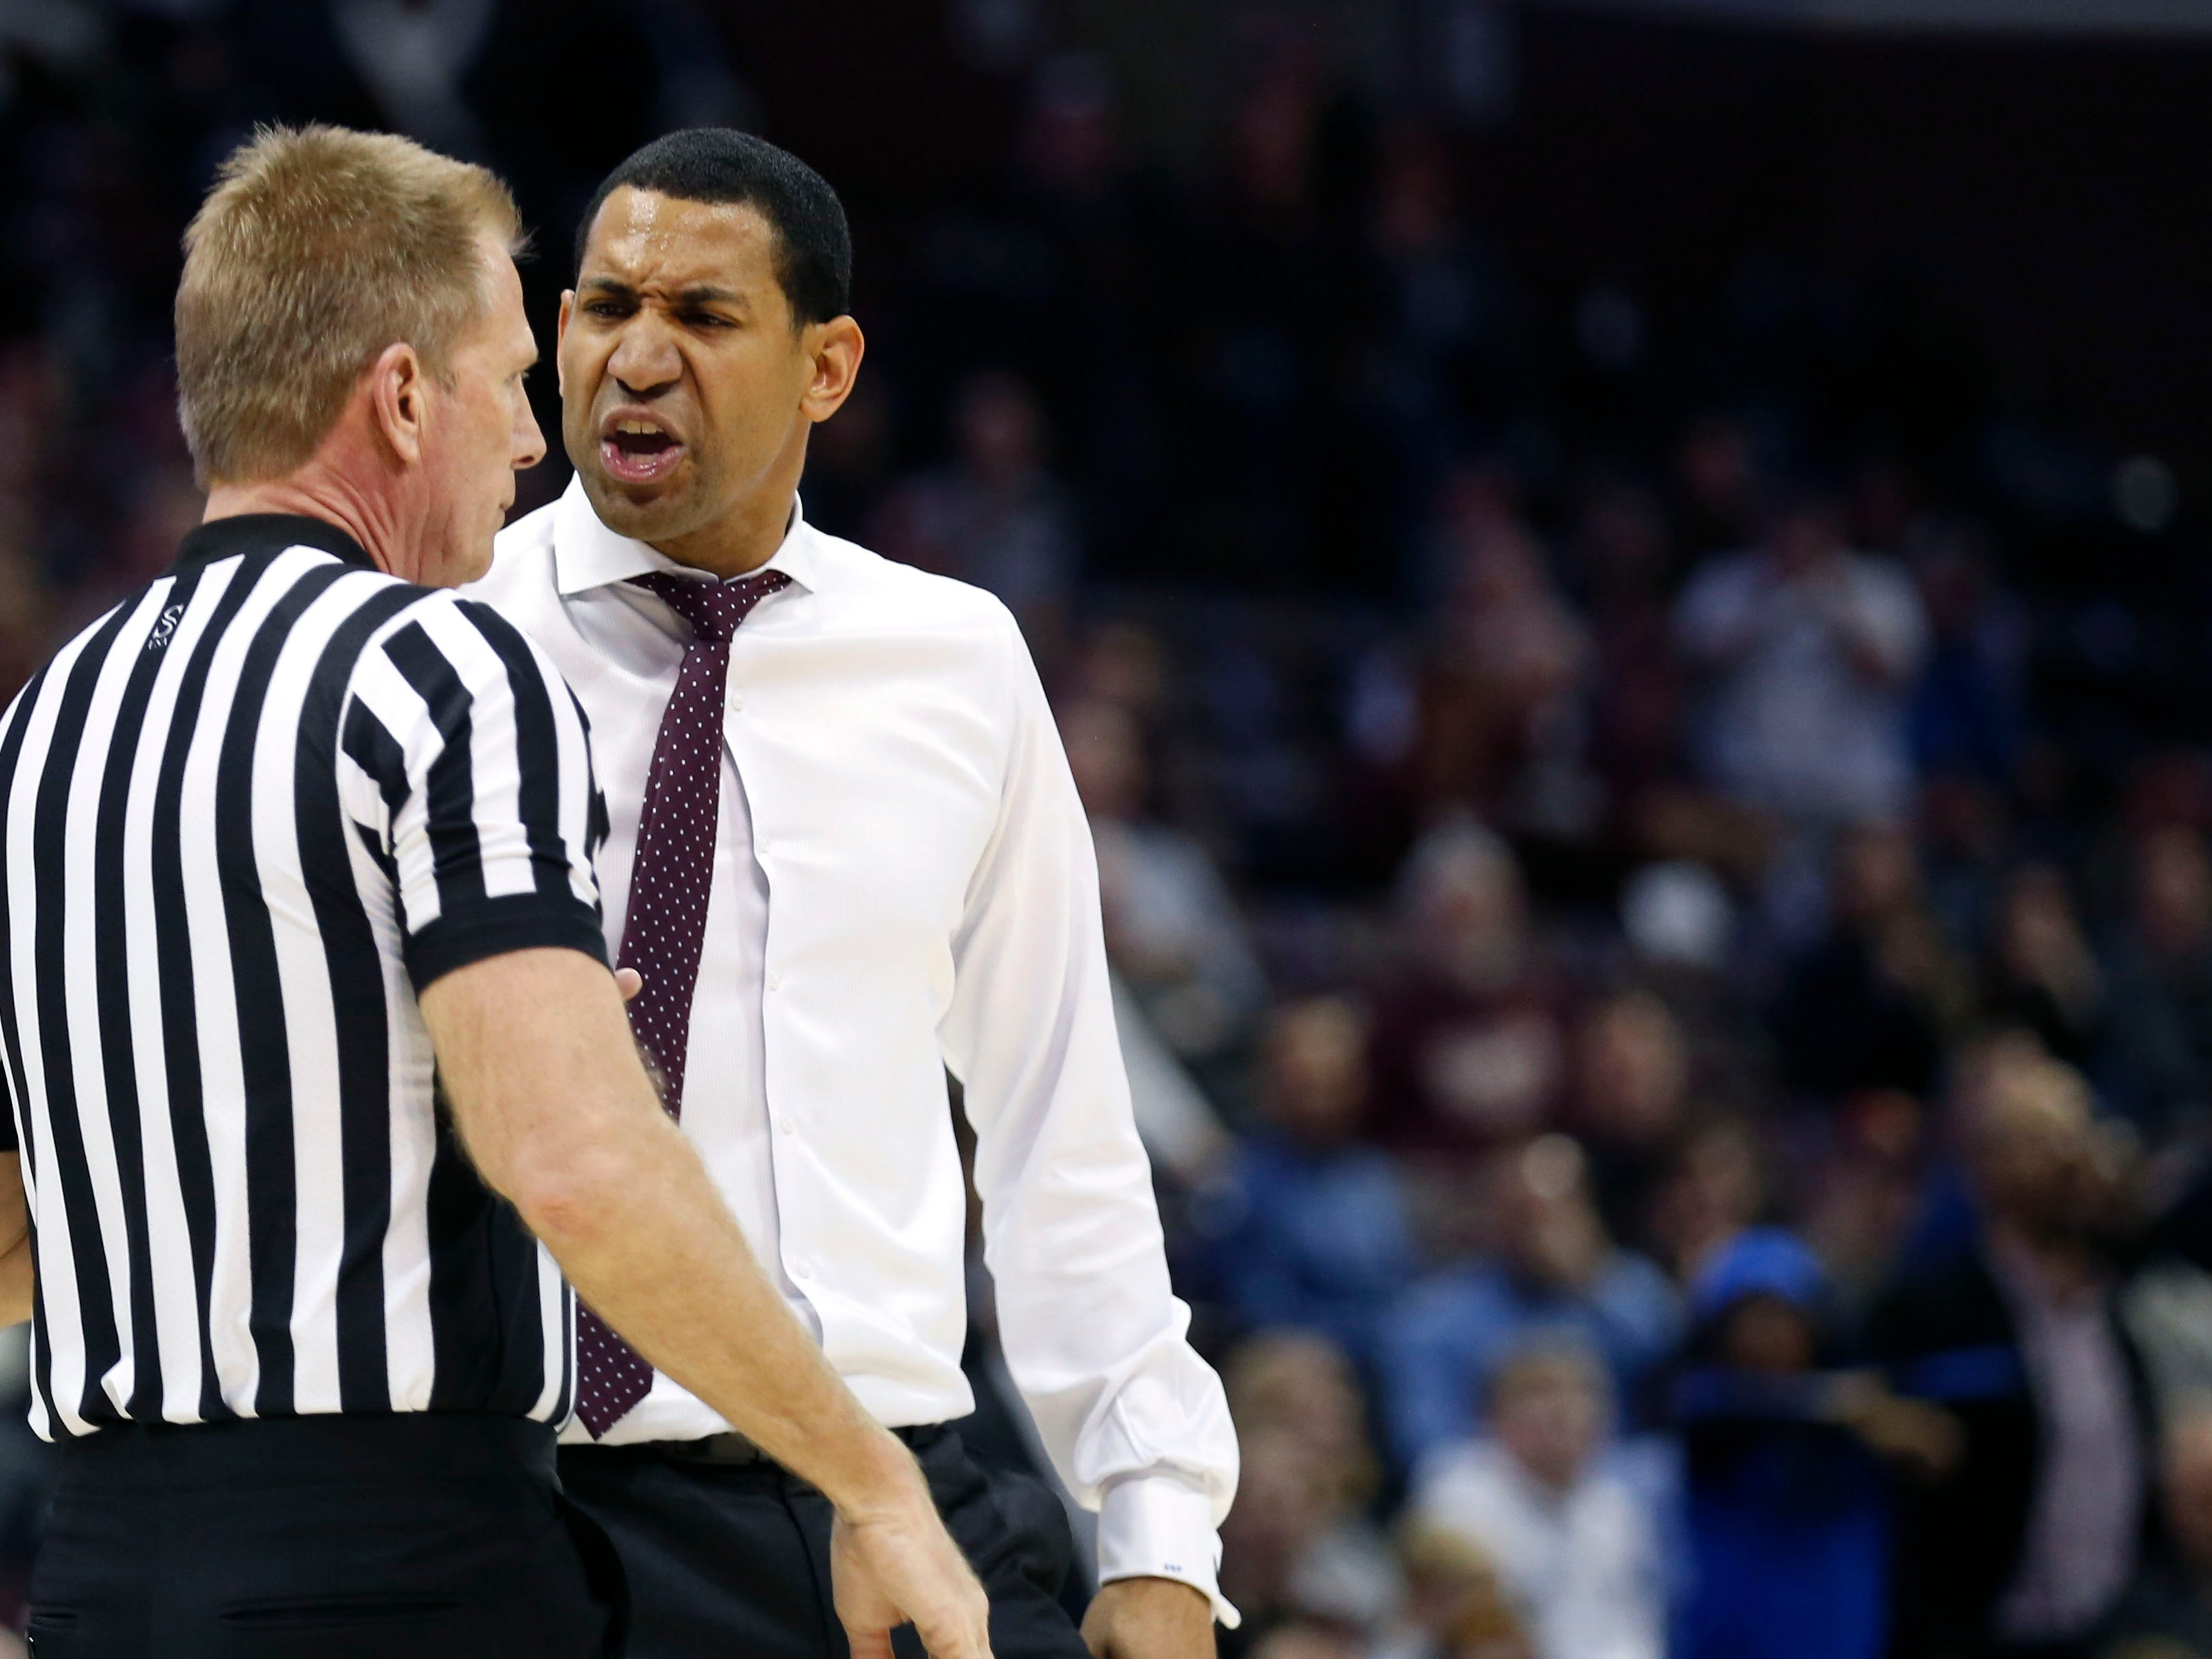 Missouri State Bears head coach Dana Ford is ejected after bumping the referee as the Bears take on the University of Northern Iowa Panthers at JQH Arena on Wednesday, Feb. 20, 2019.